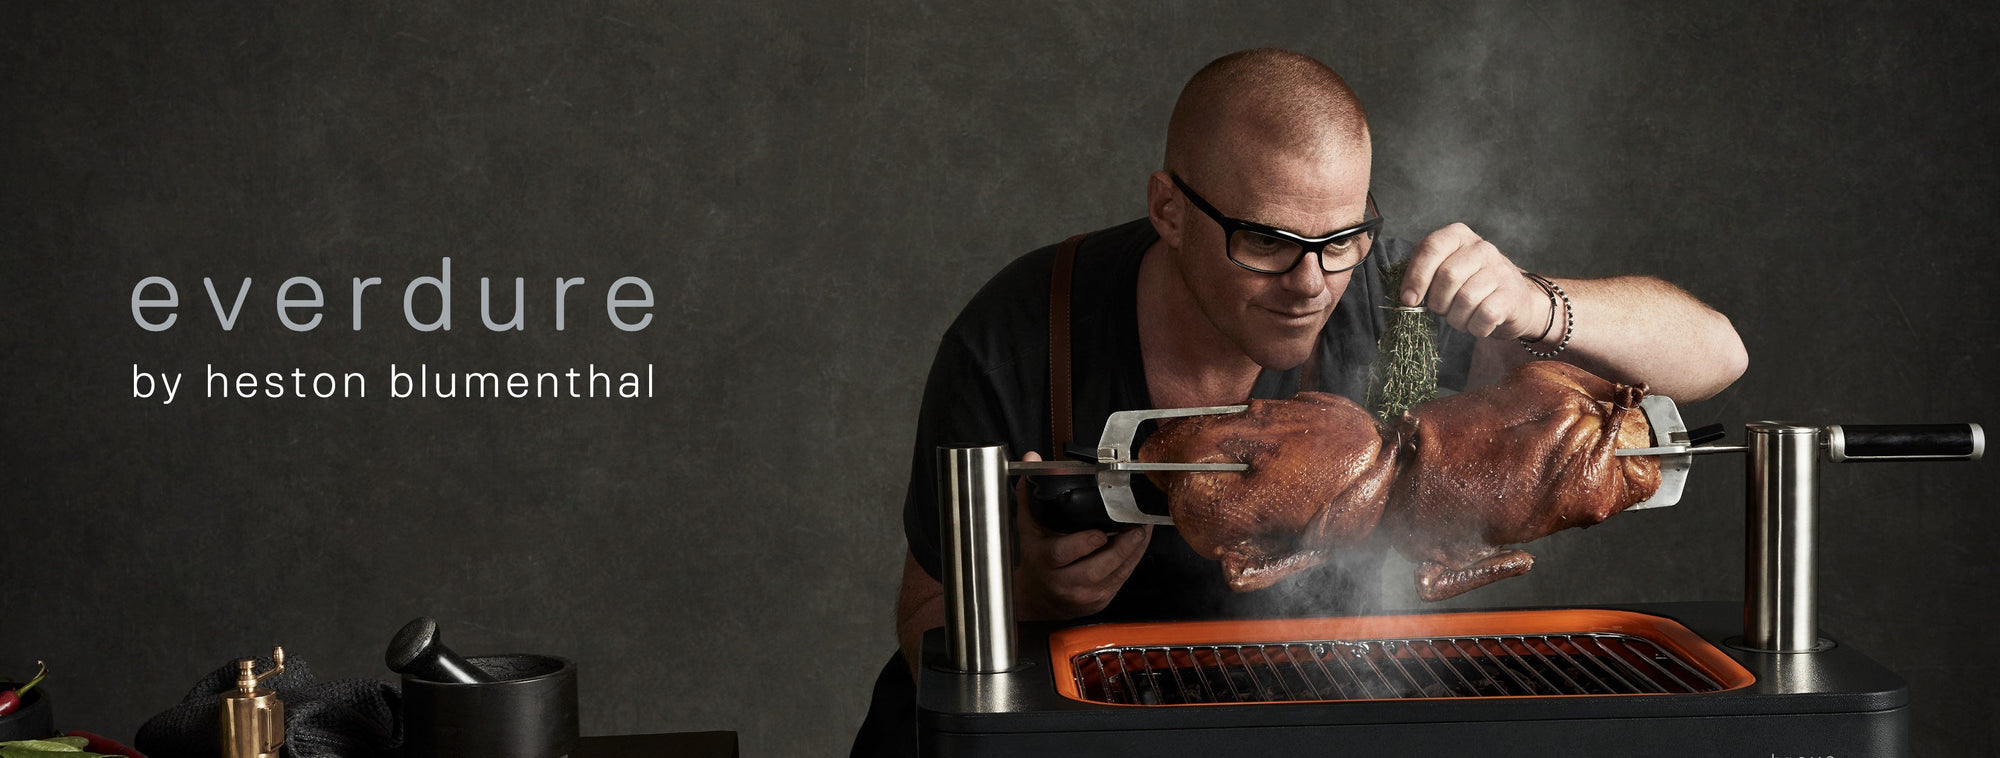 Heston Blumenthal's hi-tech Everdure BBQs take outdoor dining to the next level - Folders